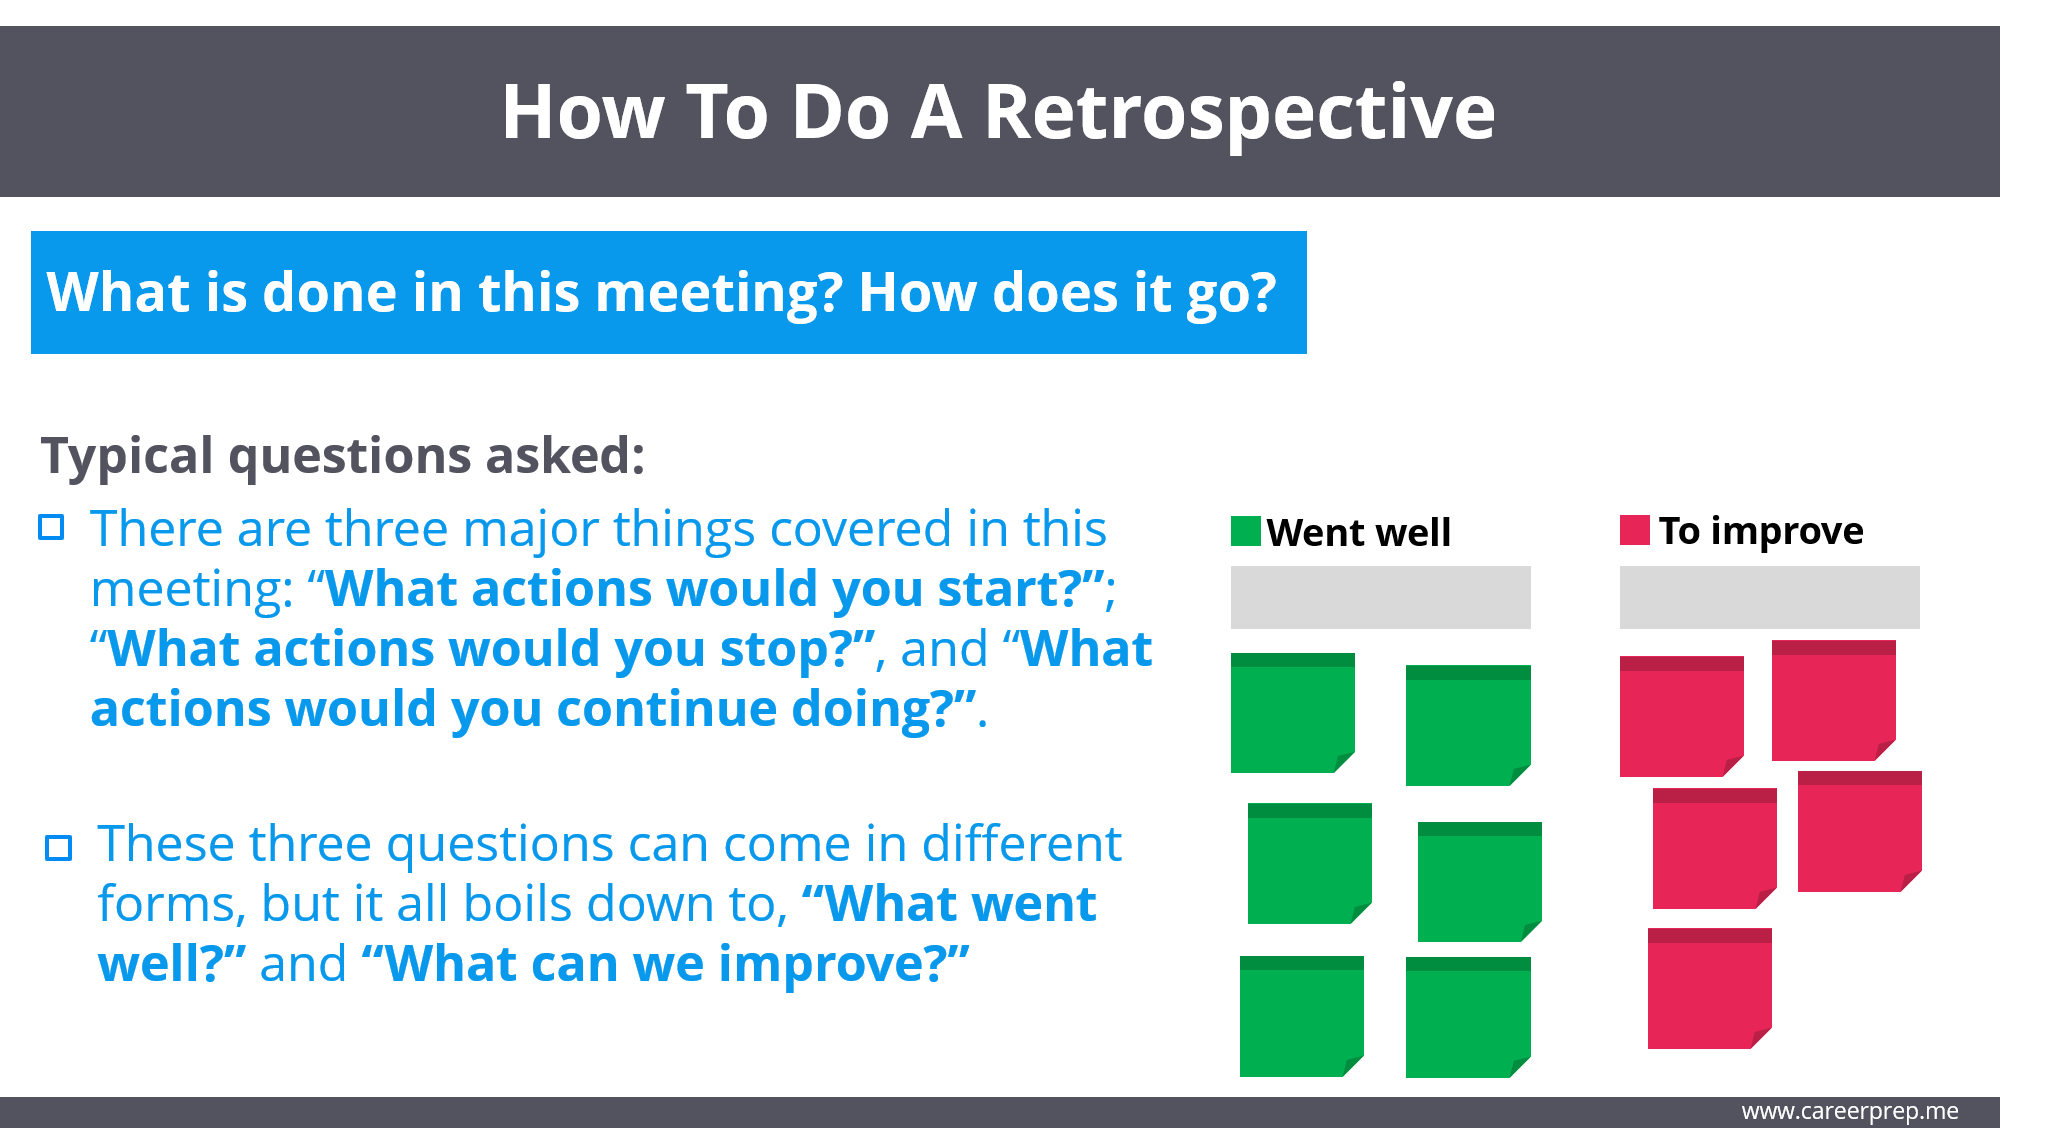 How to do a retrospective - what went well and what to improve columns